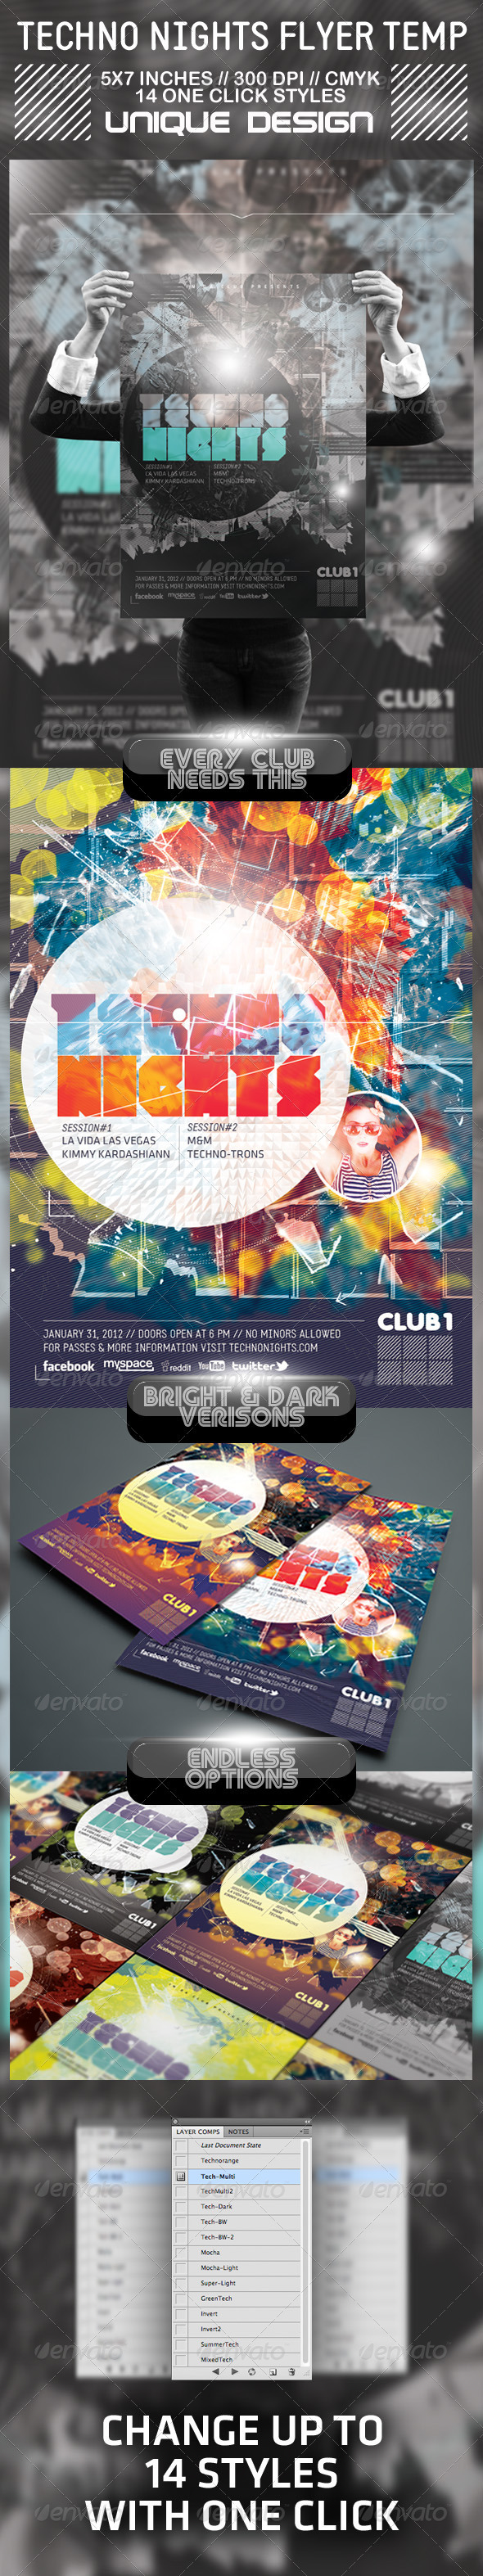 Techno Nights Flyer - Clubs & Parties Events